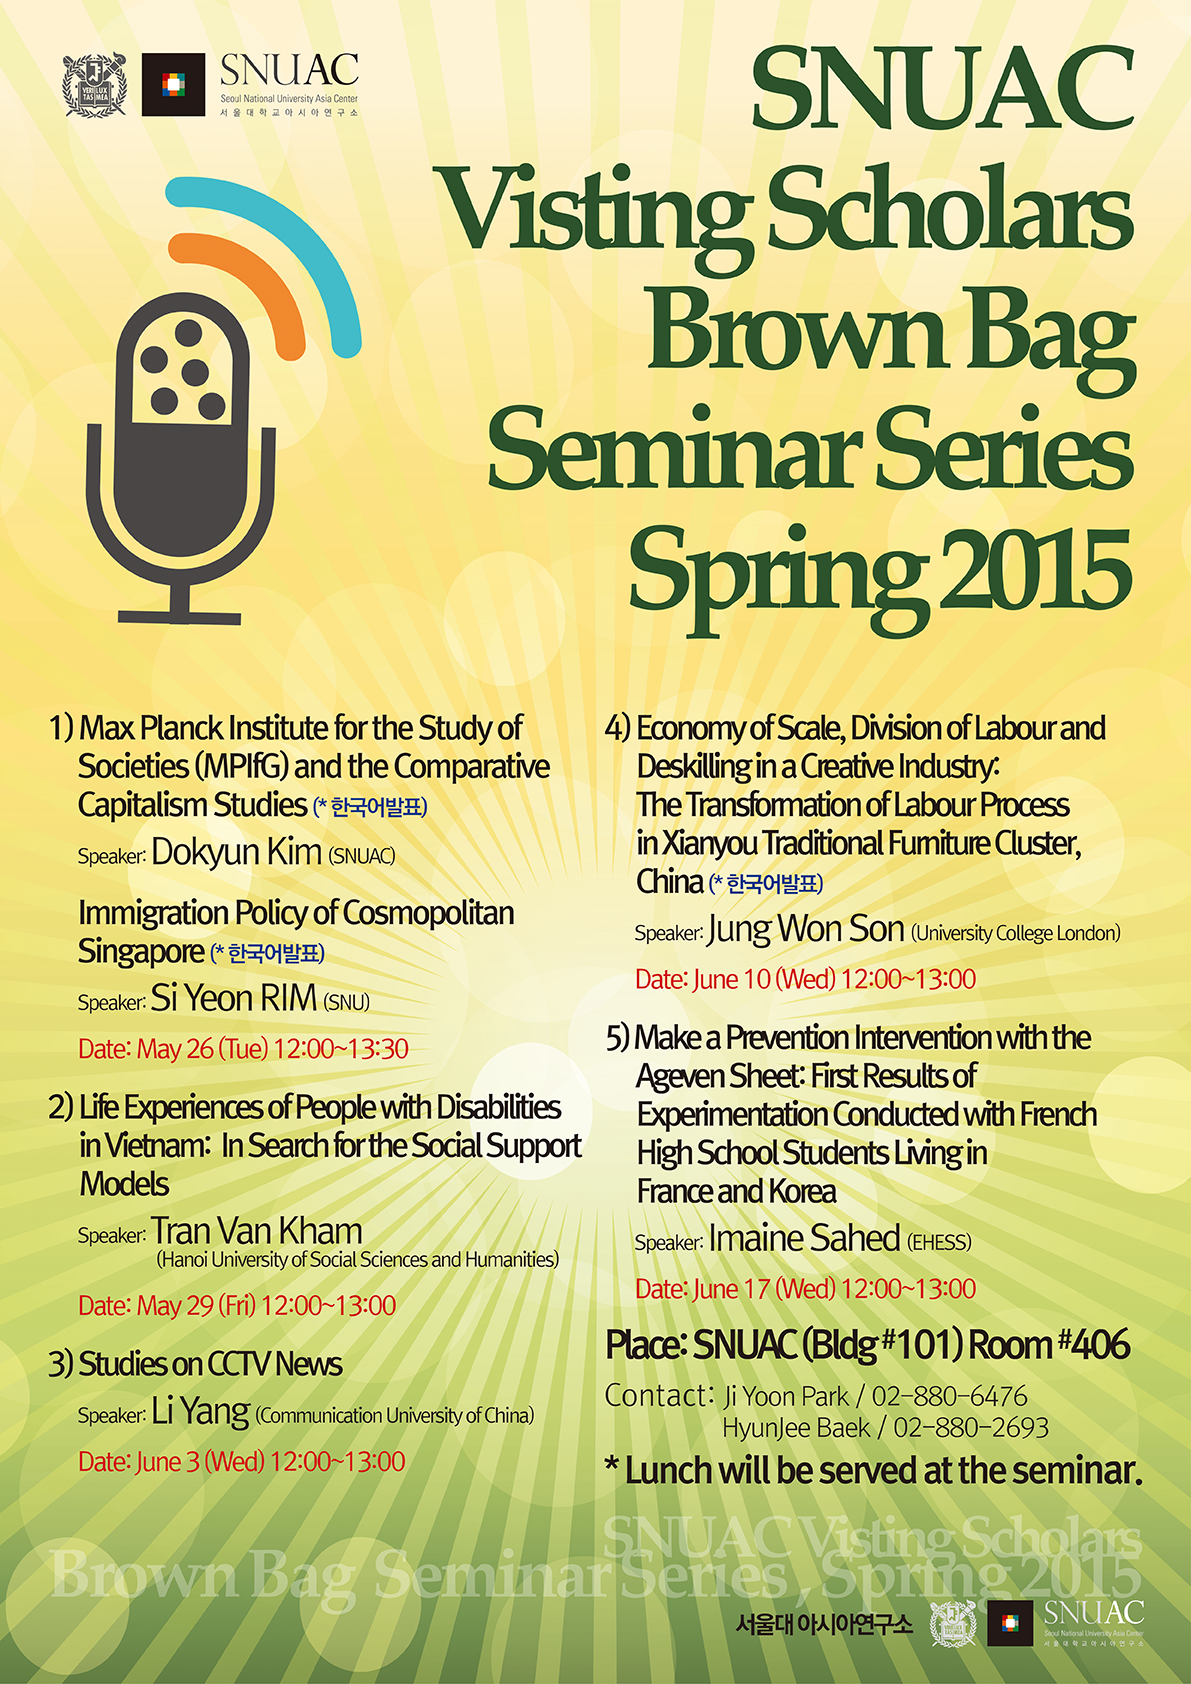 SNUAC Visting Scholars Brown Bag Seminar Series Spring 2015